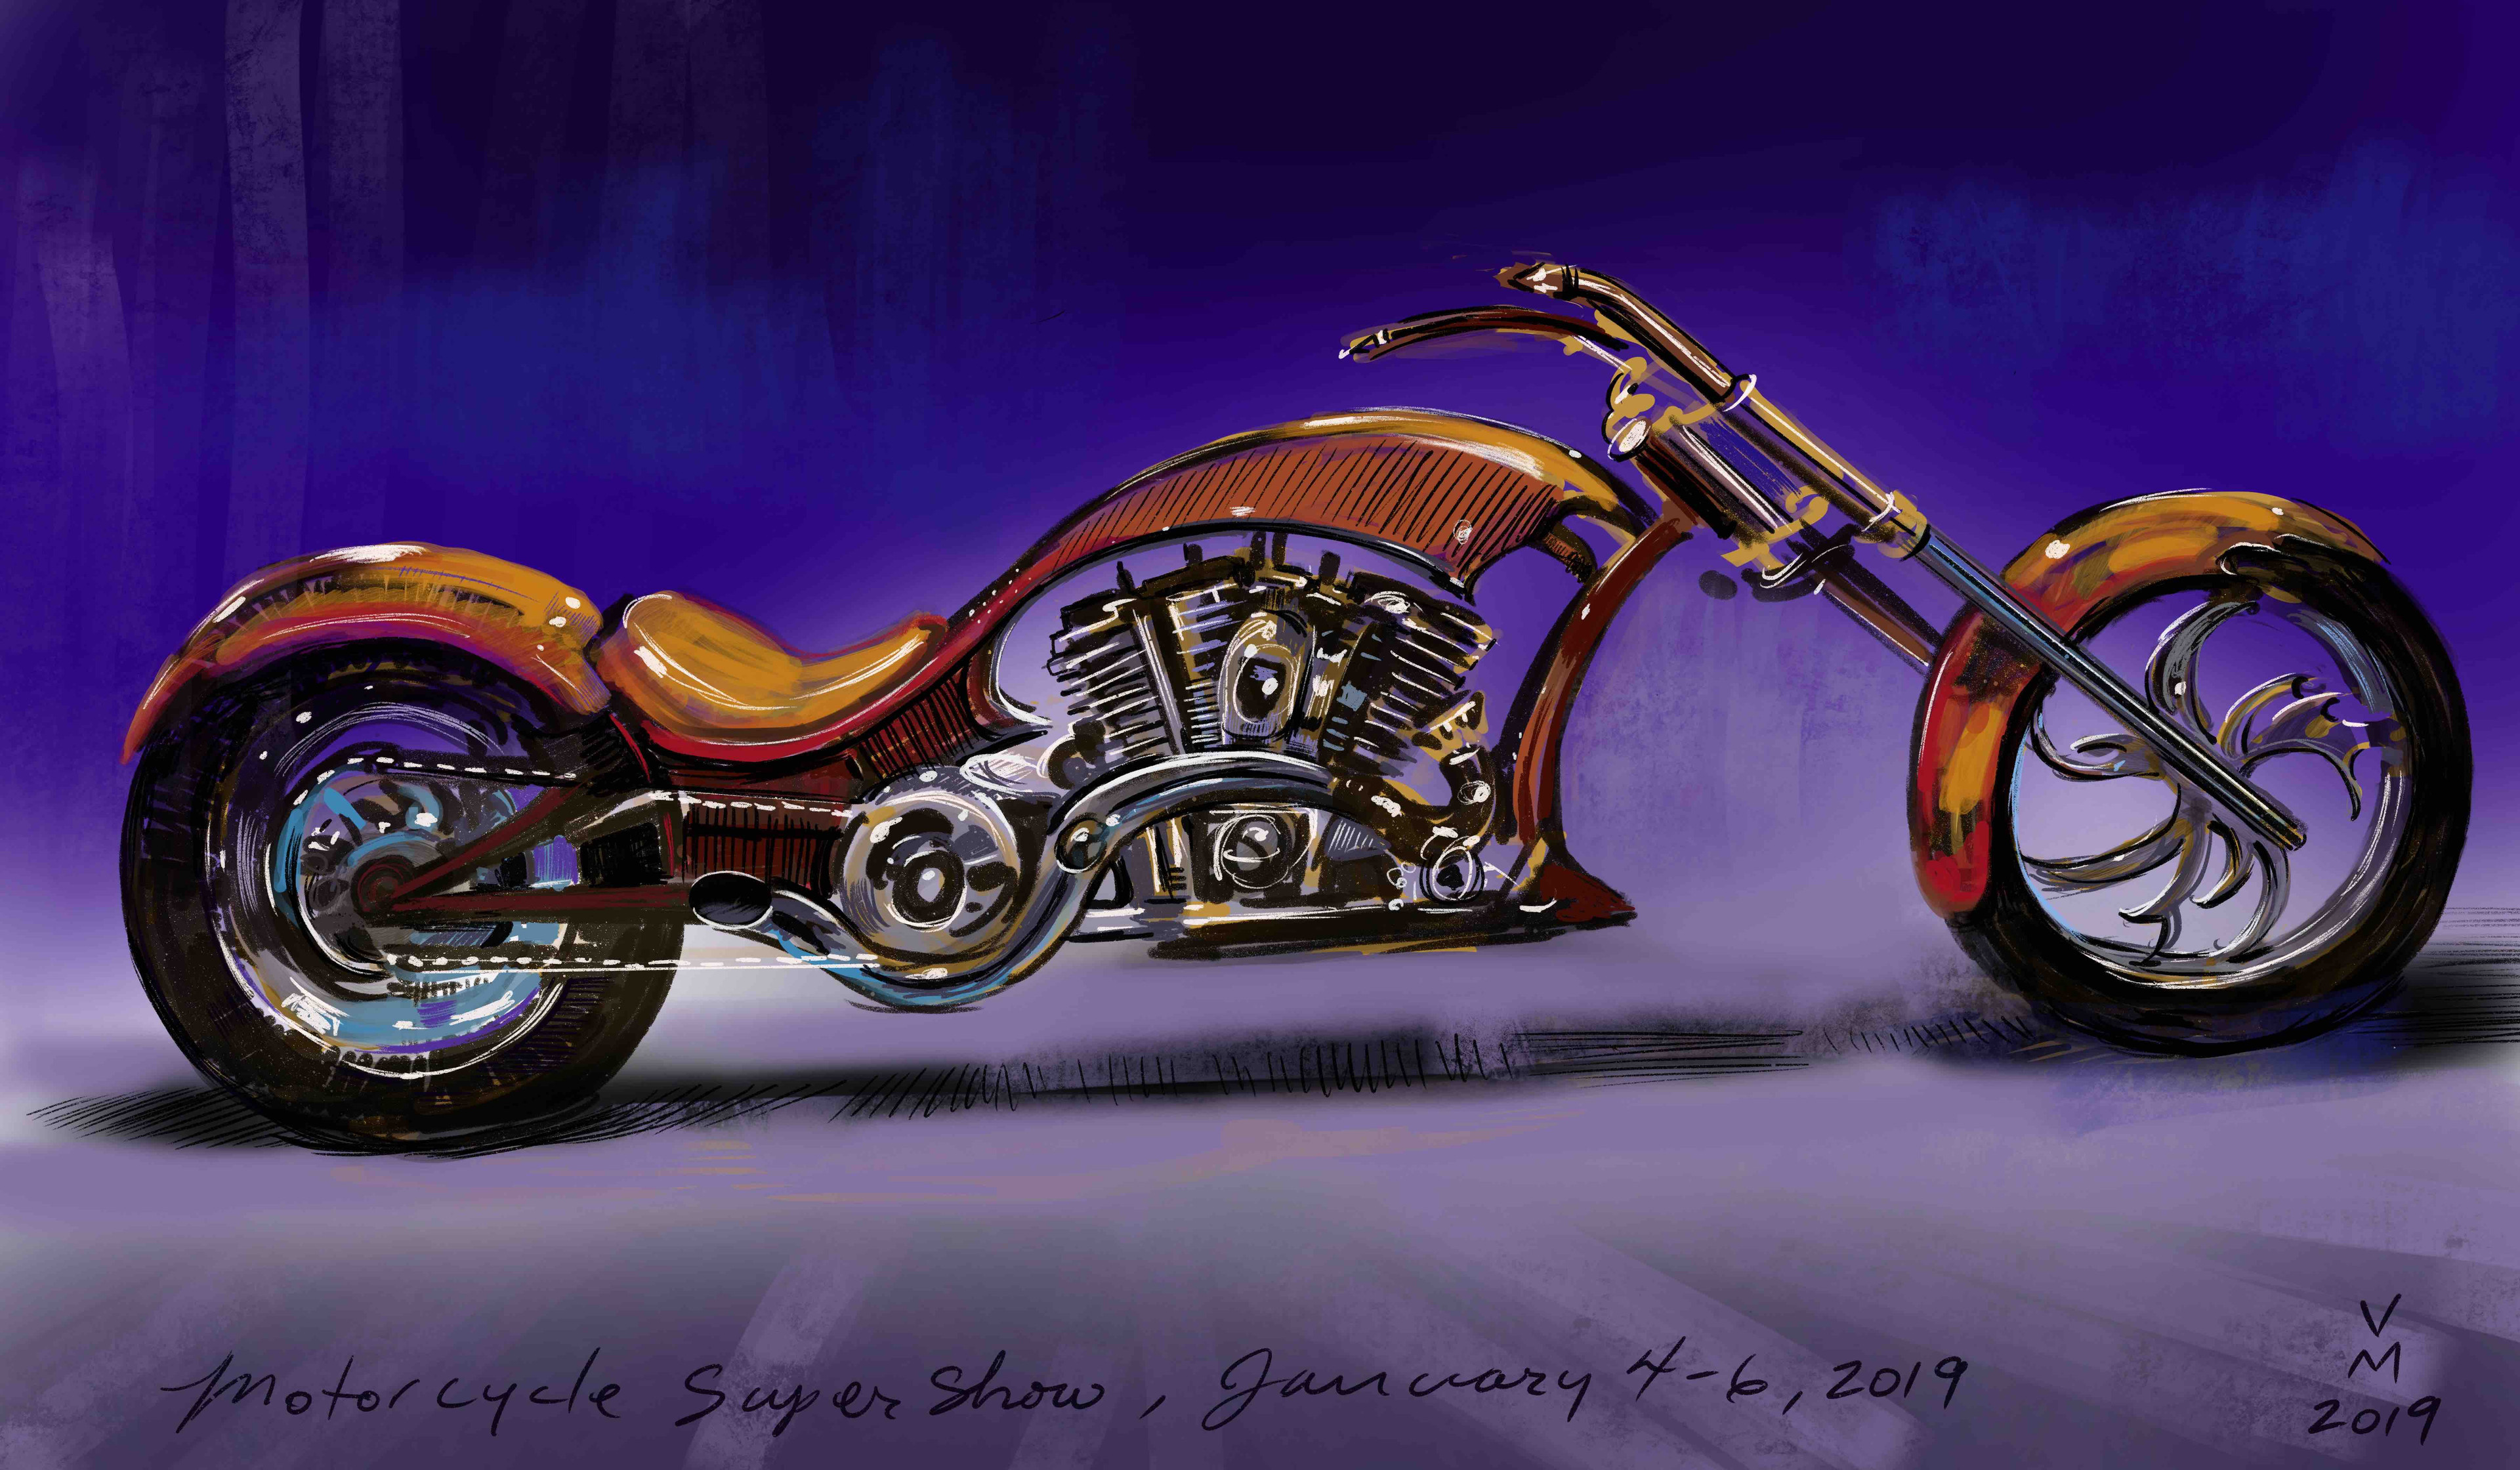 Vehicle design for Motorcycle Super Show